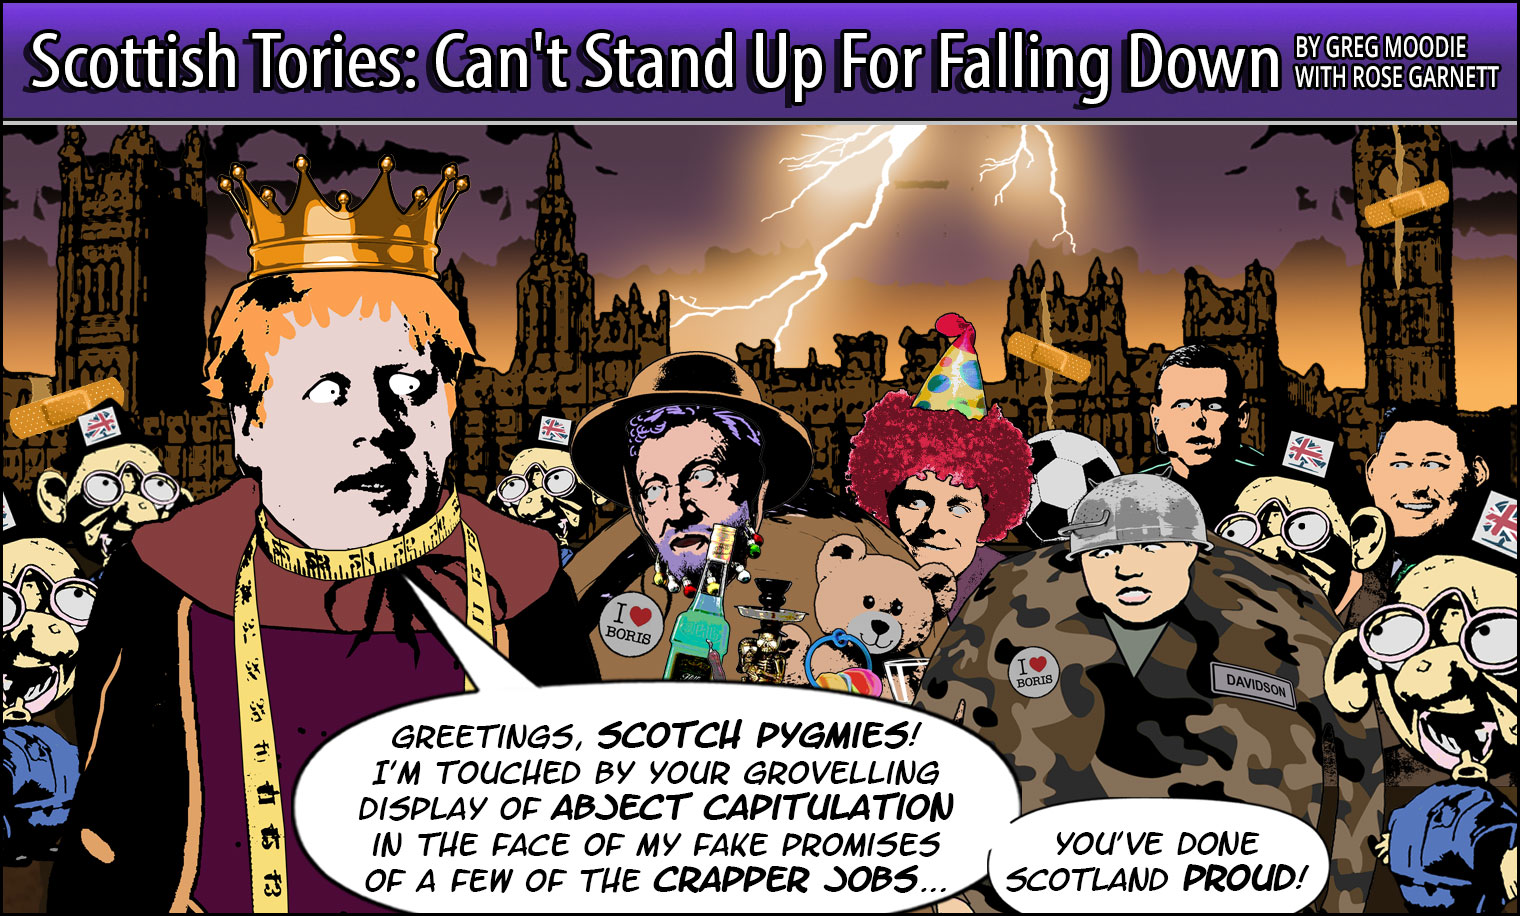 Scottish Tories: Can't Stand Up For Falling Down